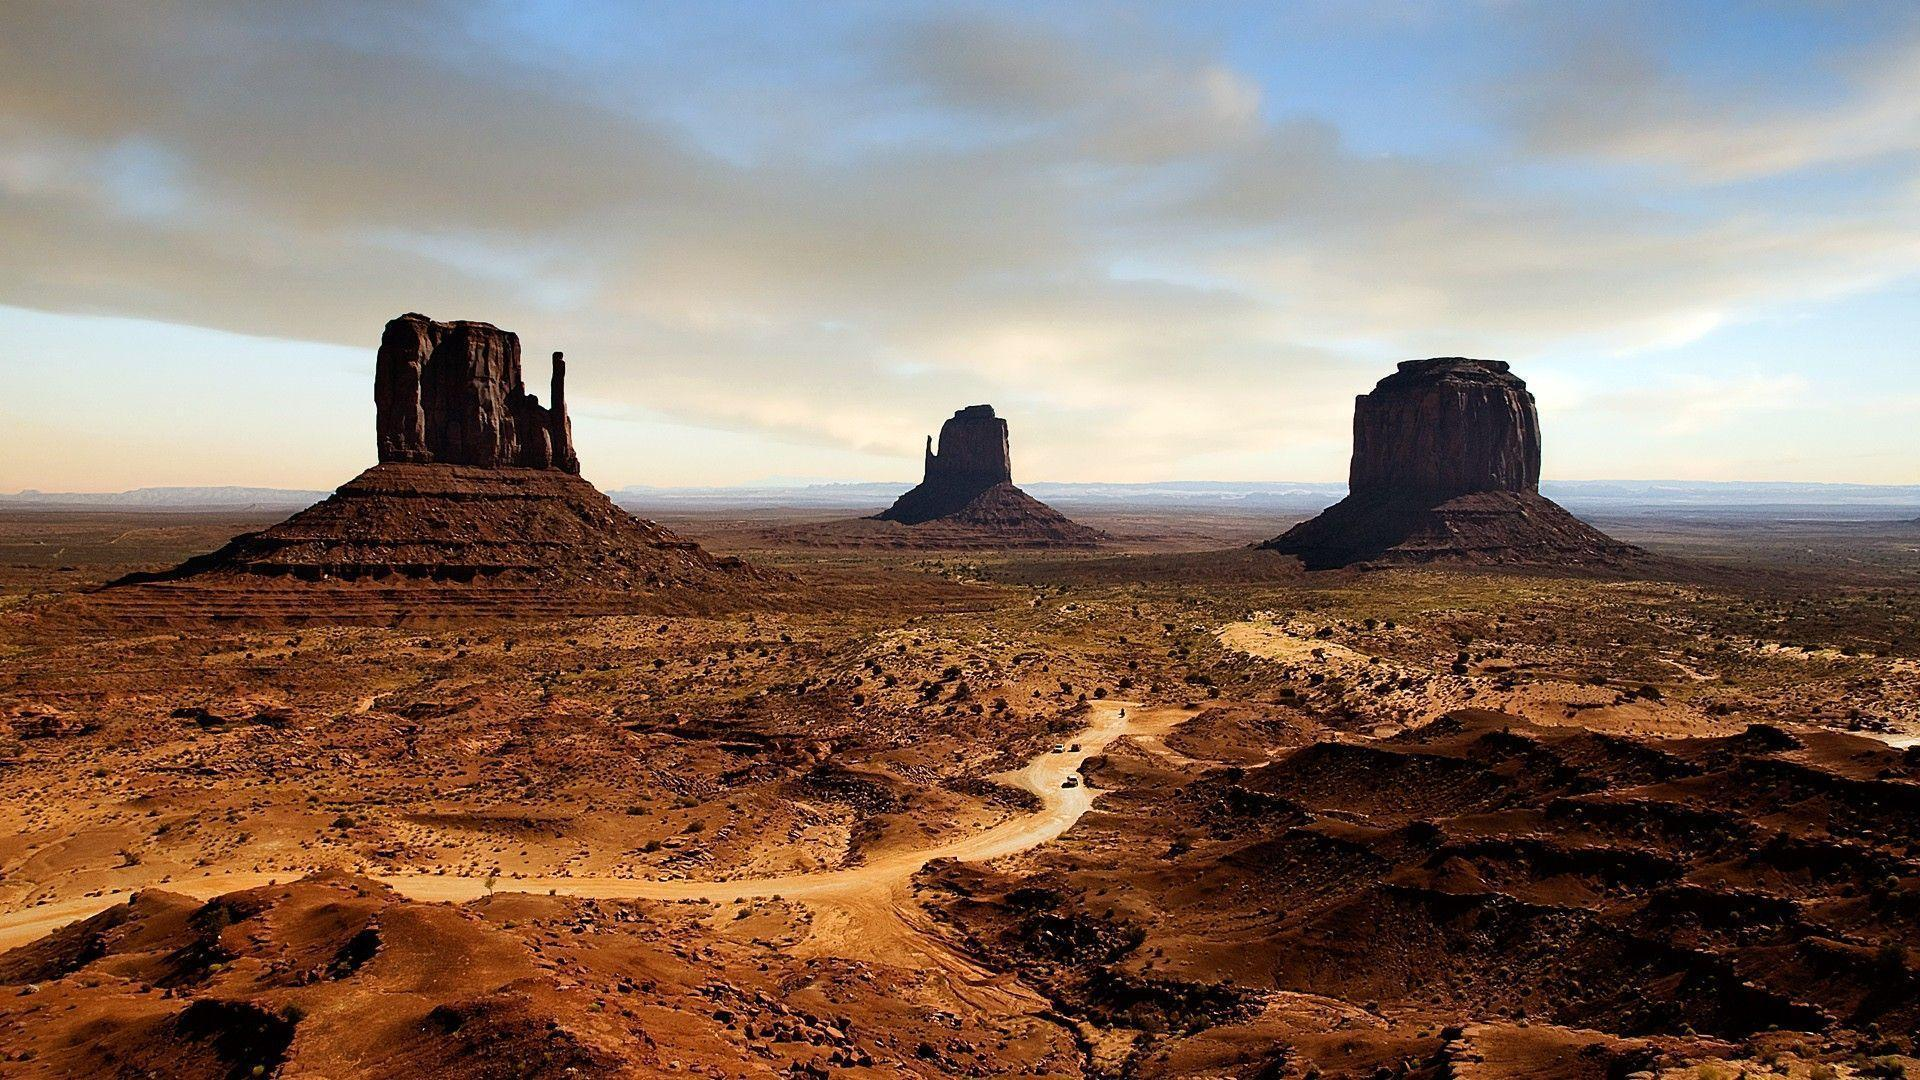 Hd wallpaper usa - Usa High Definition Hd Canyons In Wallpapers Hd Wallpapers